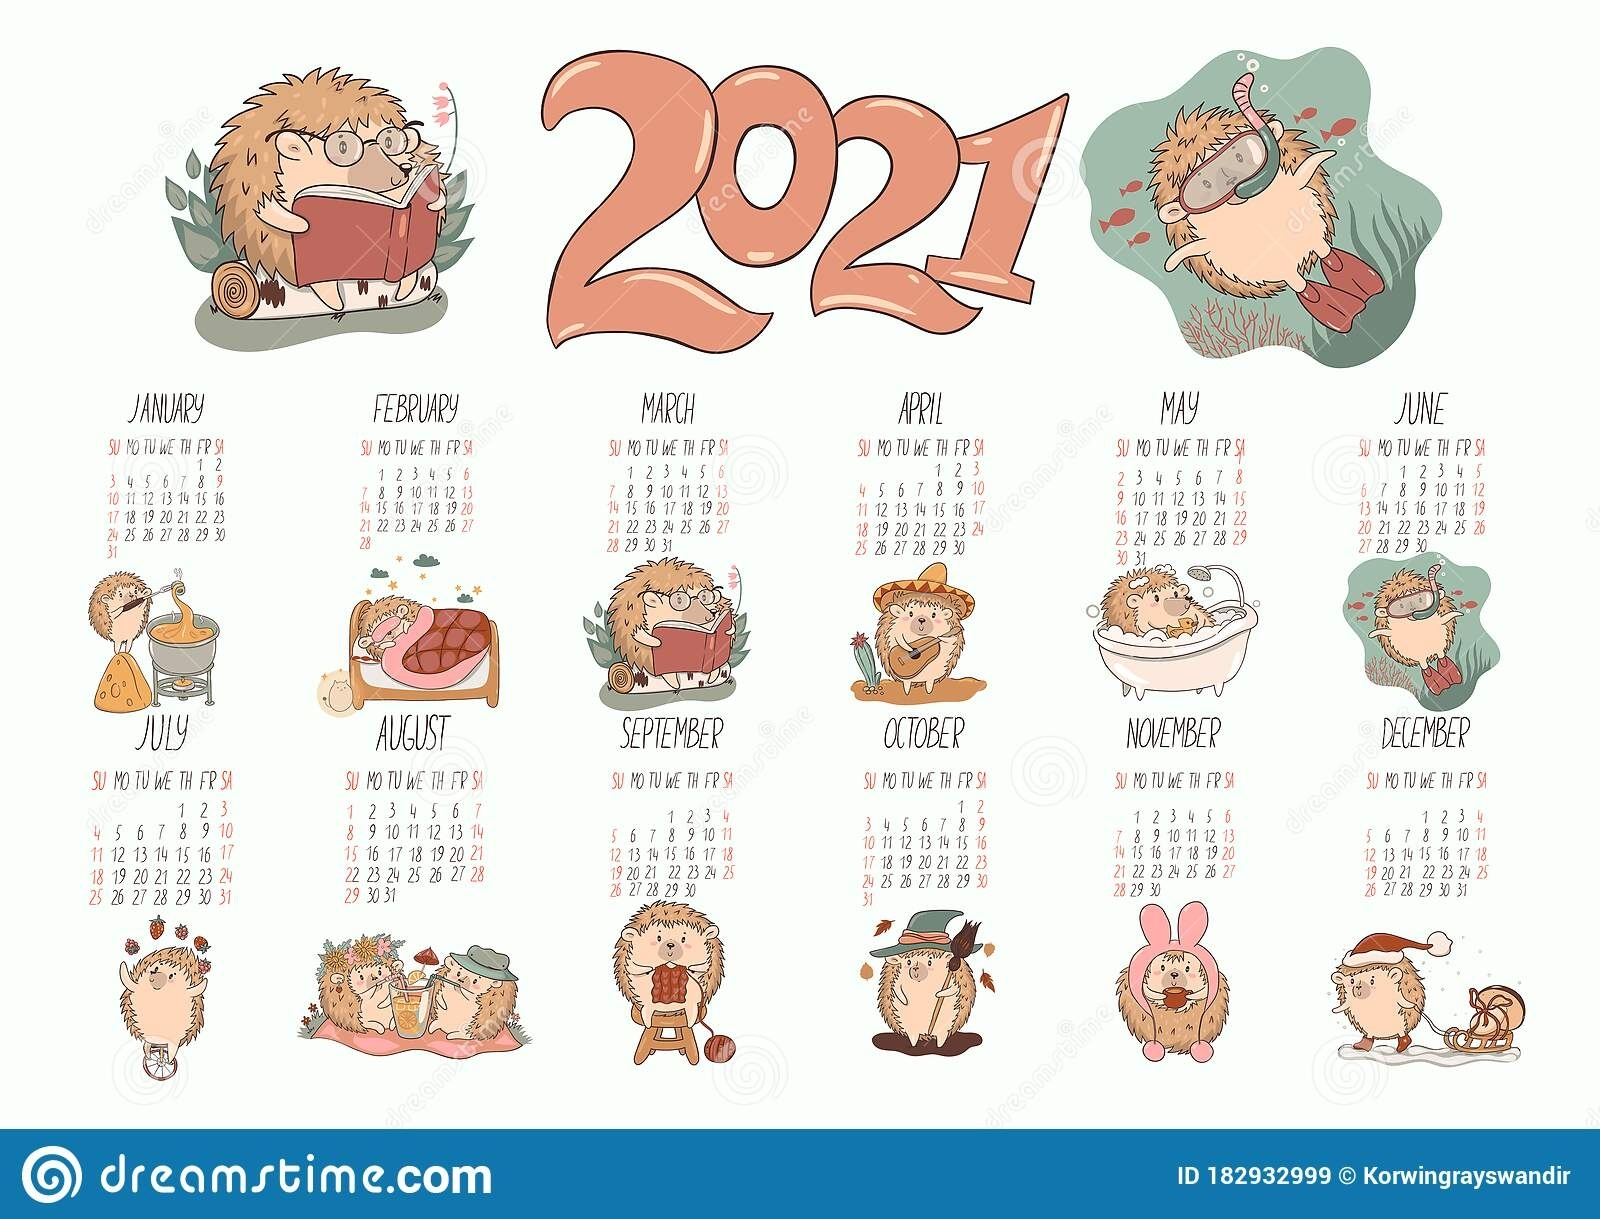 Collect August 2021 Clip Art